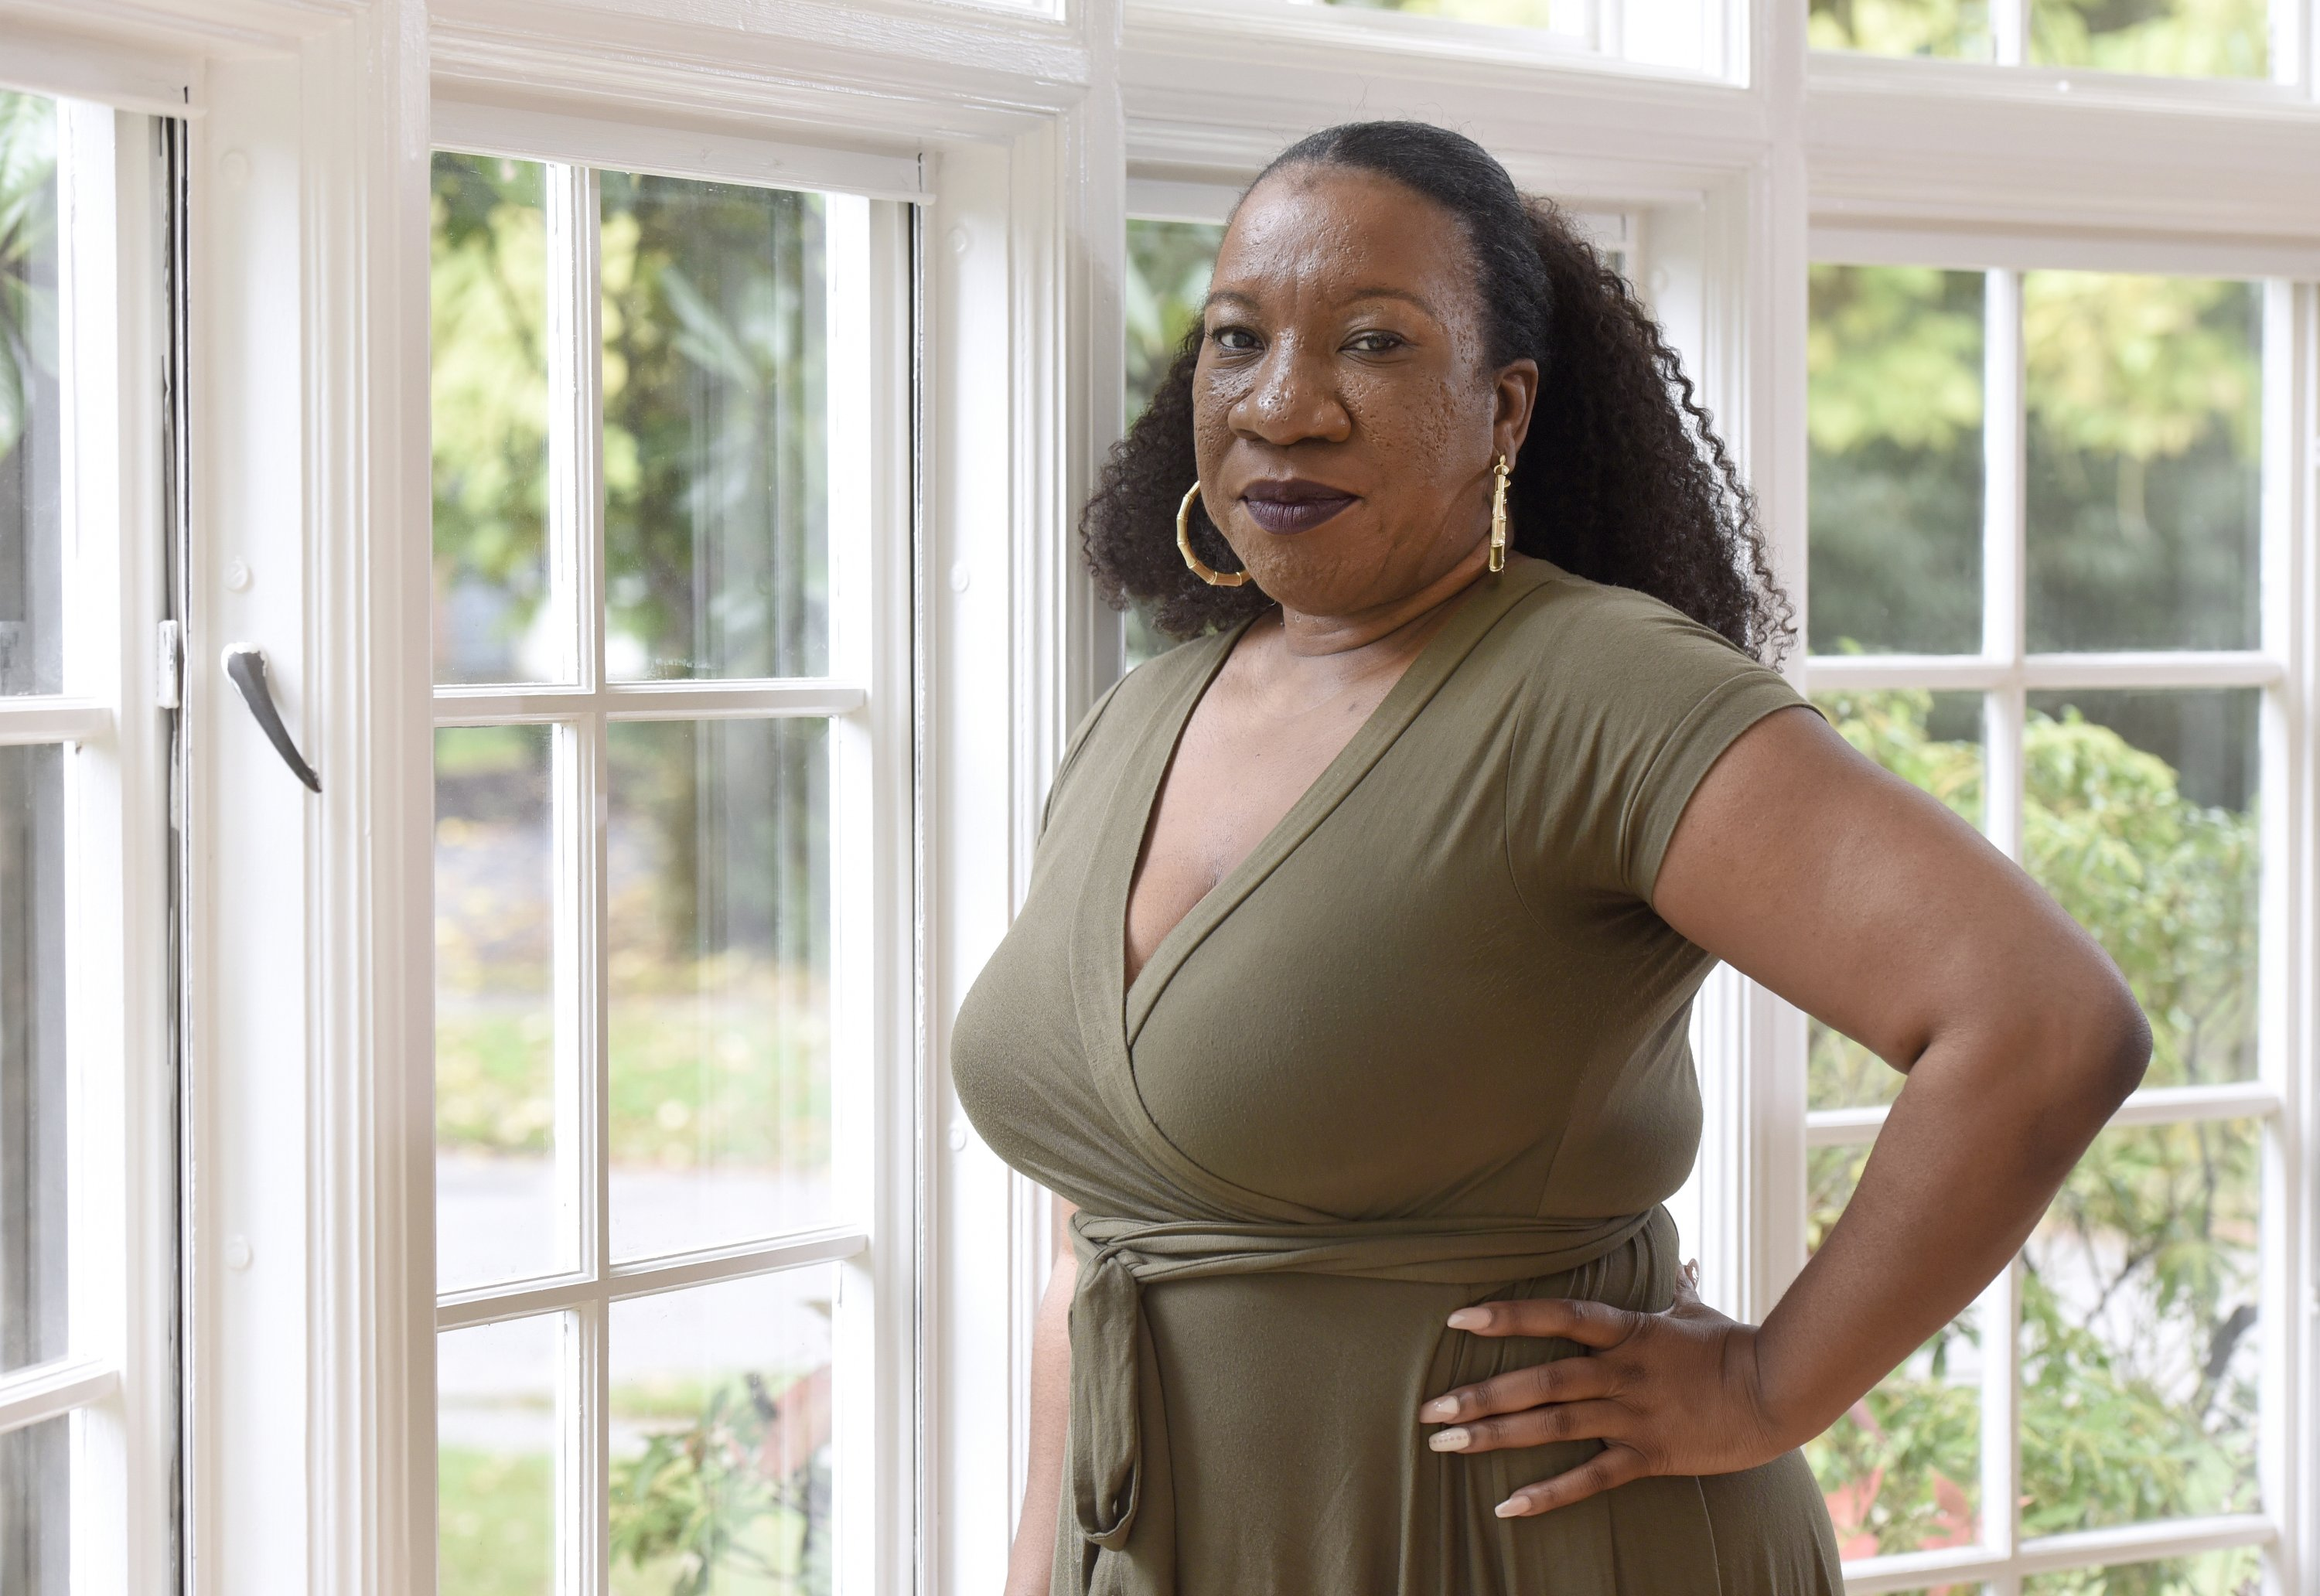 Tarana Burke, founder and leader of the #MeToo movement, stands in her home in Baltimore, U.S., Oct. 13, 2020. (AP Photo)